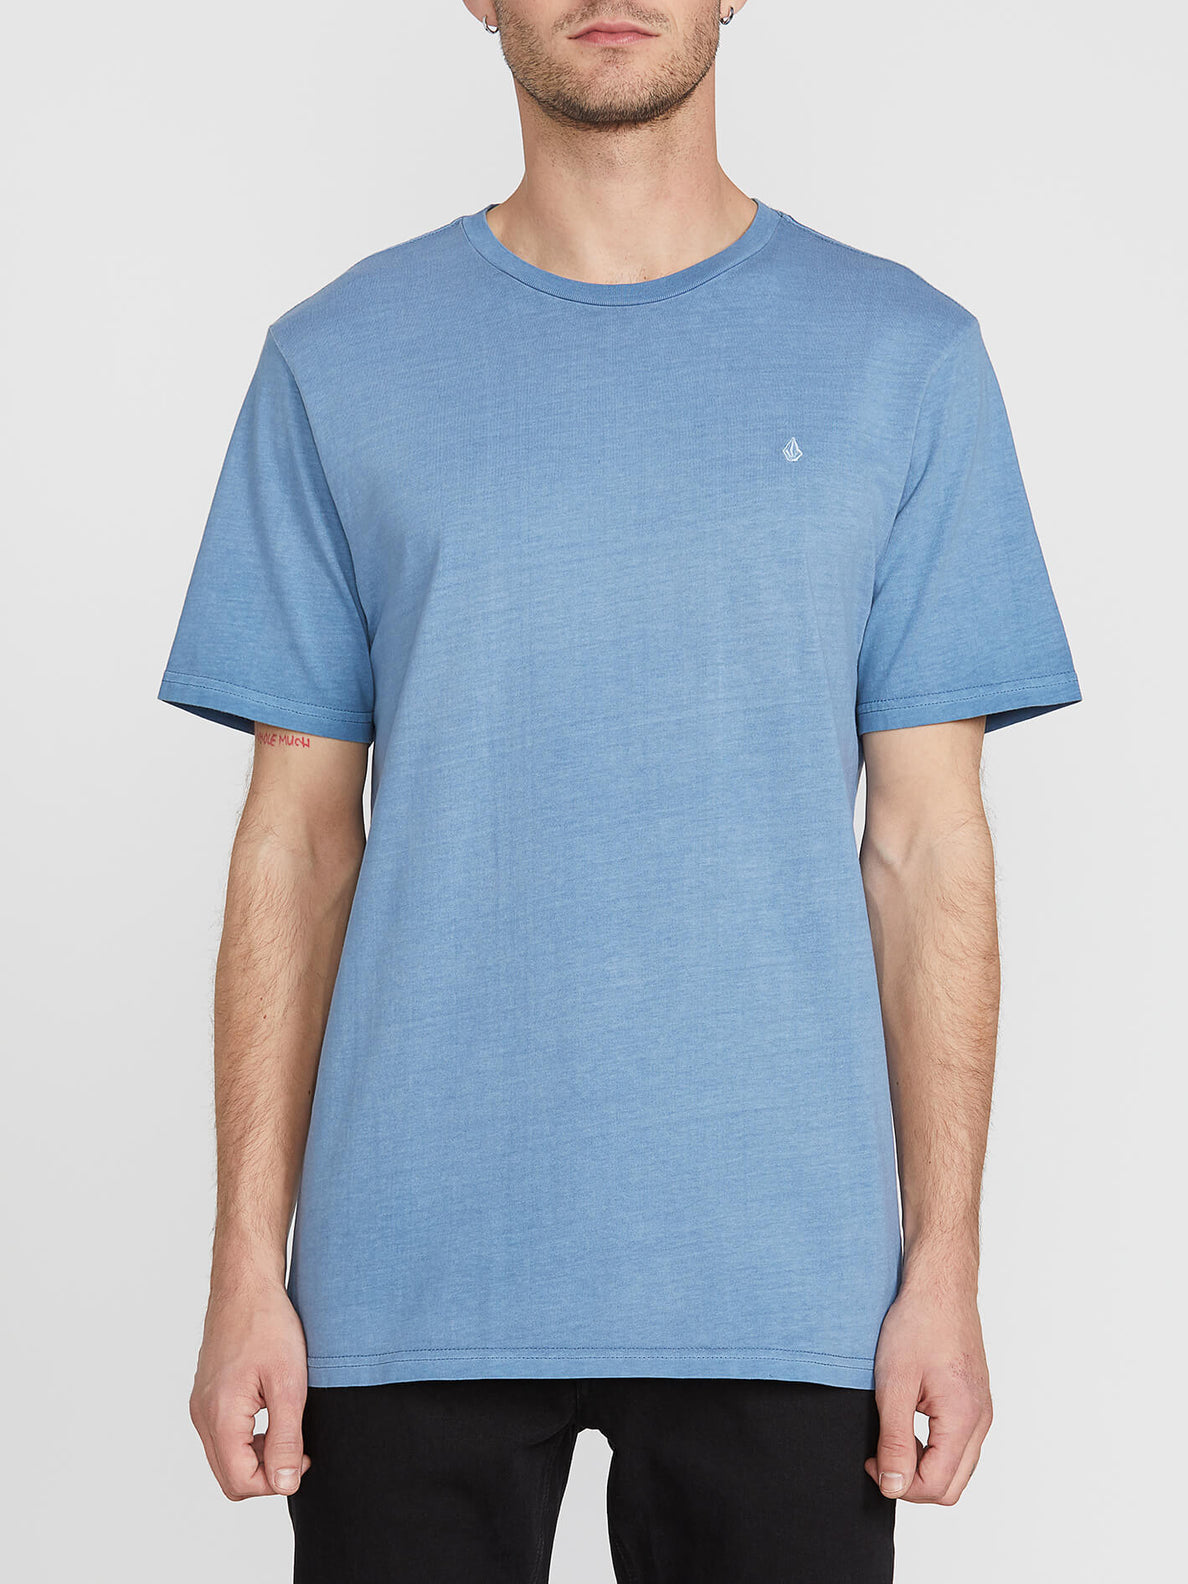 Solid Stone Short Sleeve Emblem Tee - Blue Rinse (A5211906_RNE) [F]